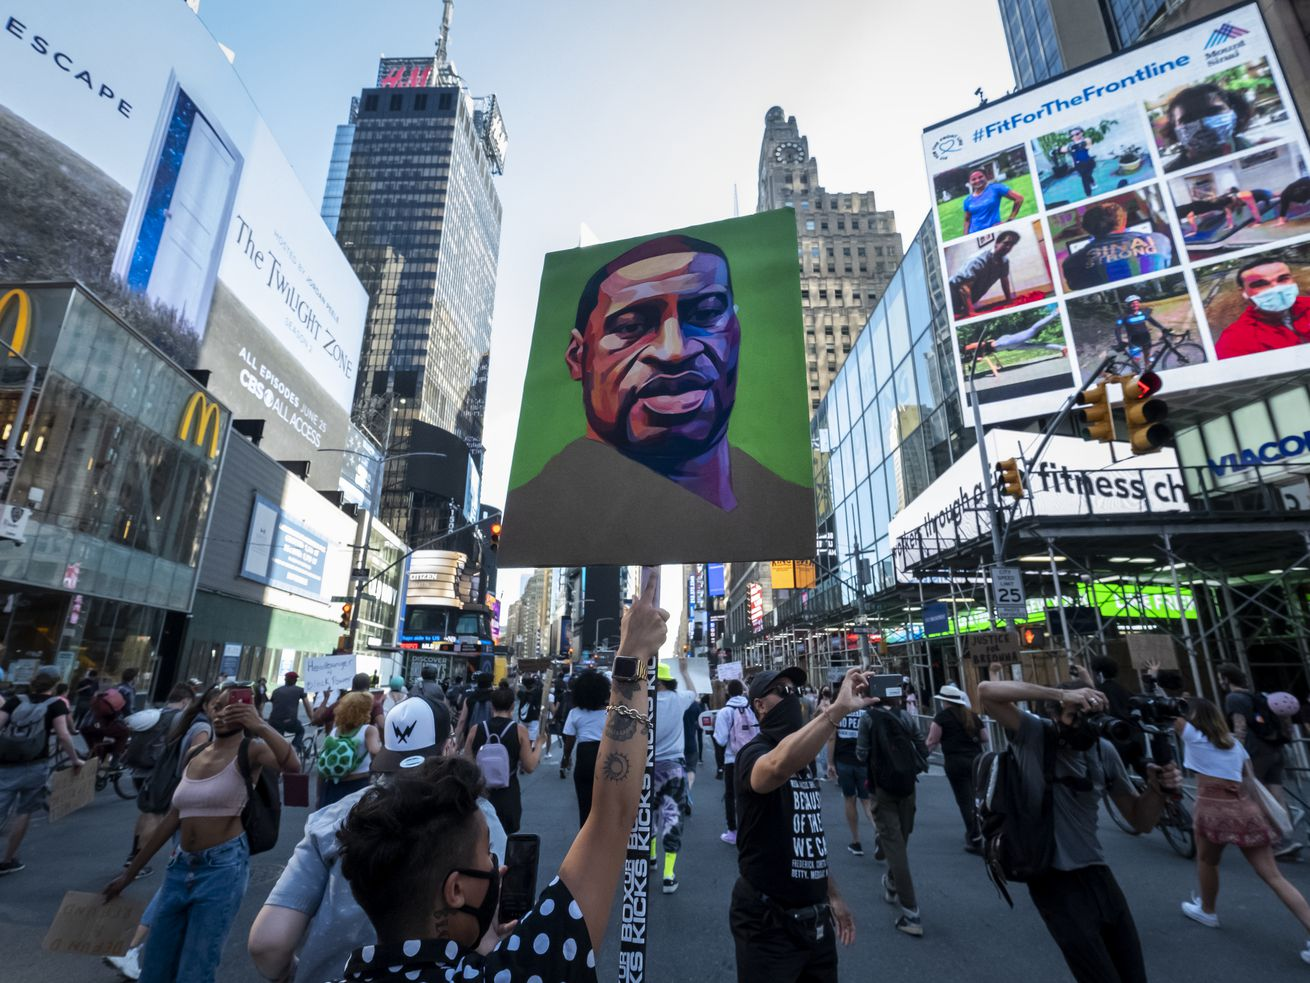 "Protesters wearing masks walk through the streets of Times Square holding up their hands and chanting, ""Hands Up Don't Shoot"" after police officers conceded to let protesters that are trying to peacefully march through Times Square with one protester holding a sign with a portrait painting of George Floyd."